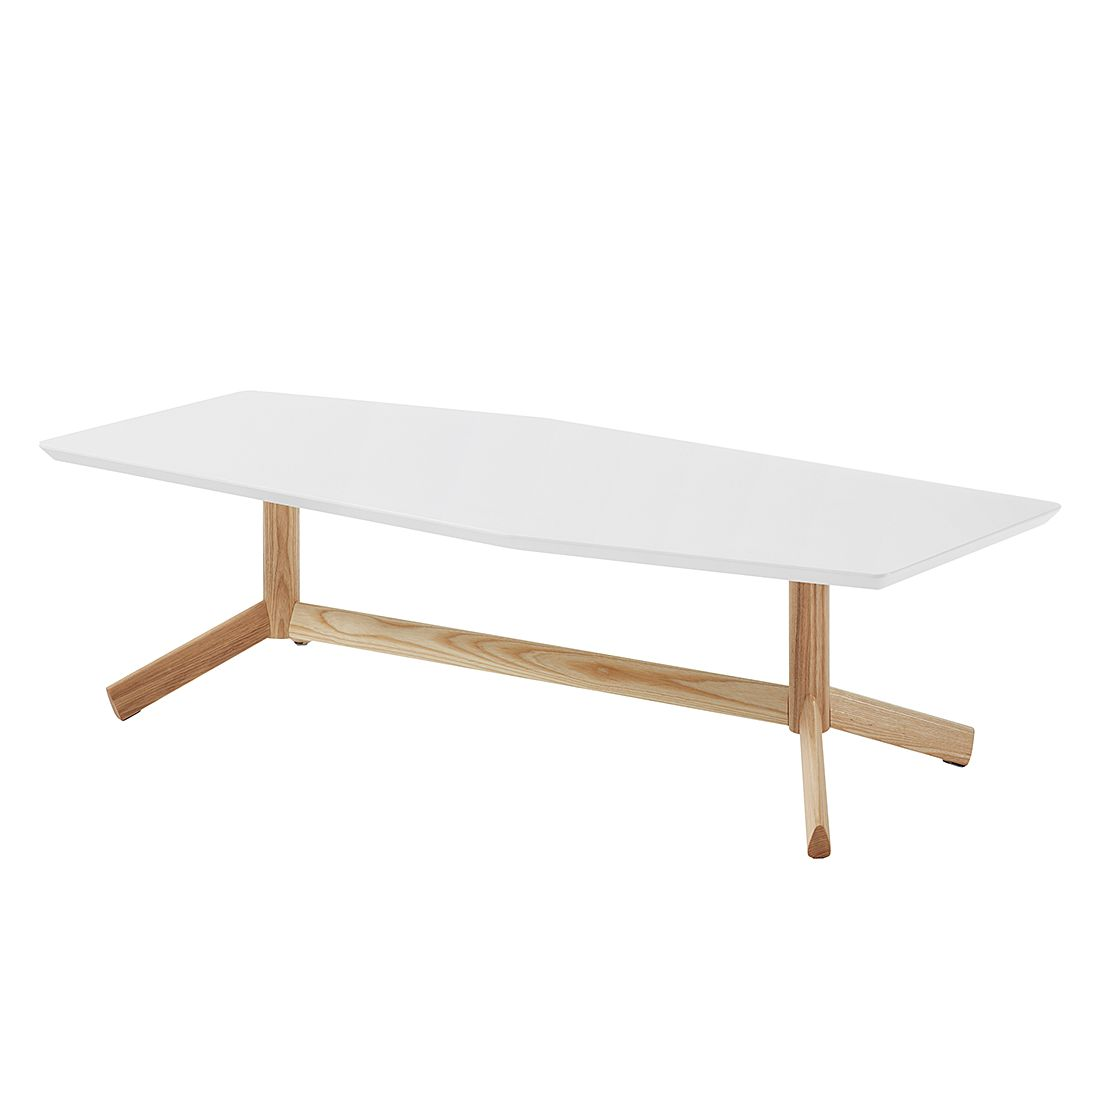 Table basse Kilrea - Blanc mat / Frêne, Morteens